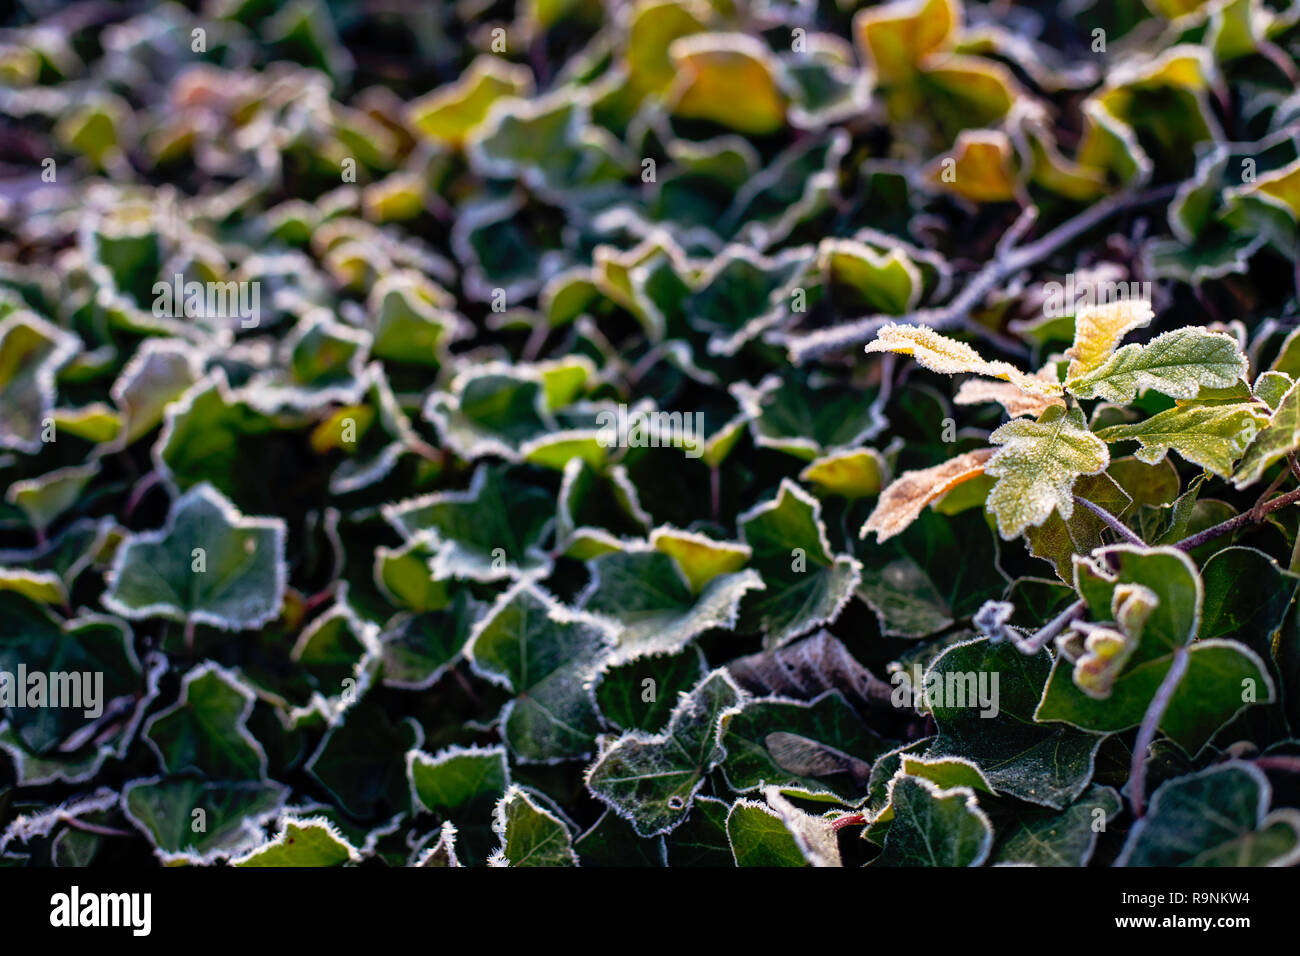 Hoar or rime frost, ice crystals on the leaves of ivy in the garden - Stock Image